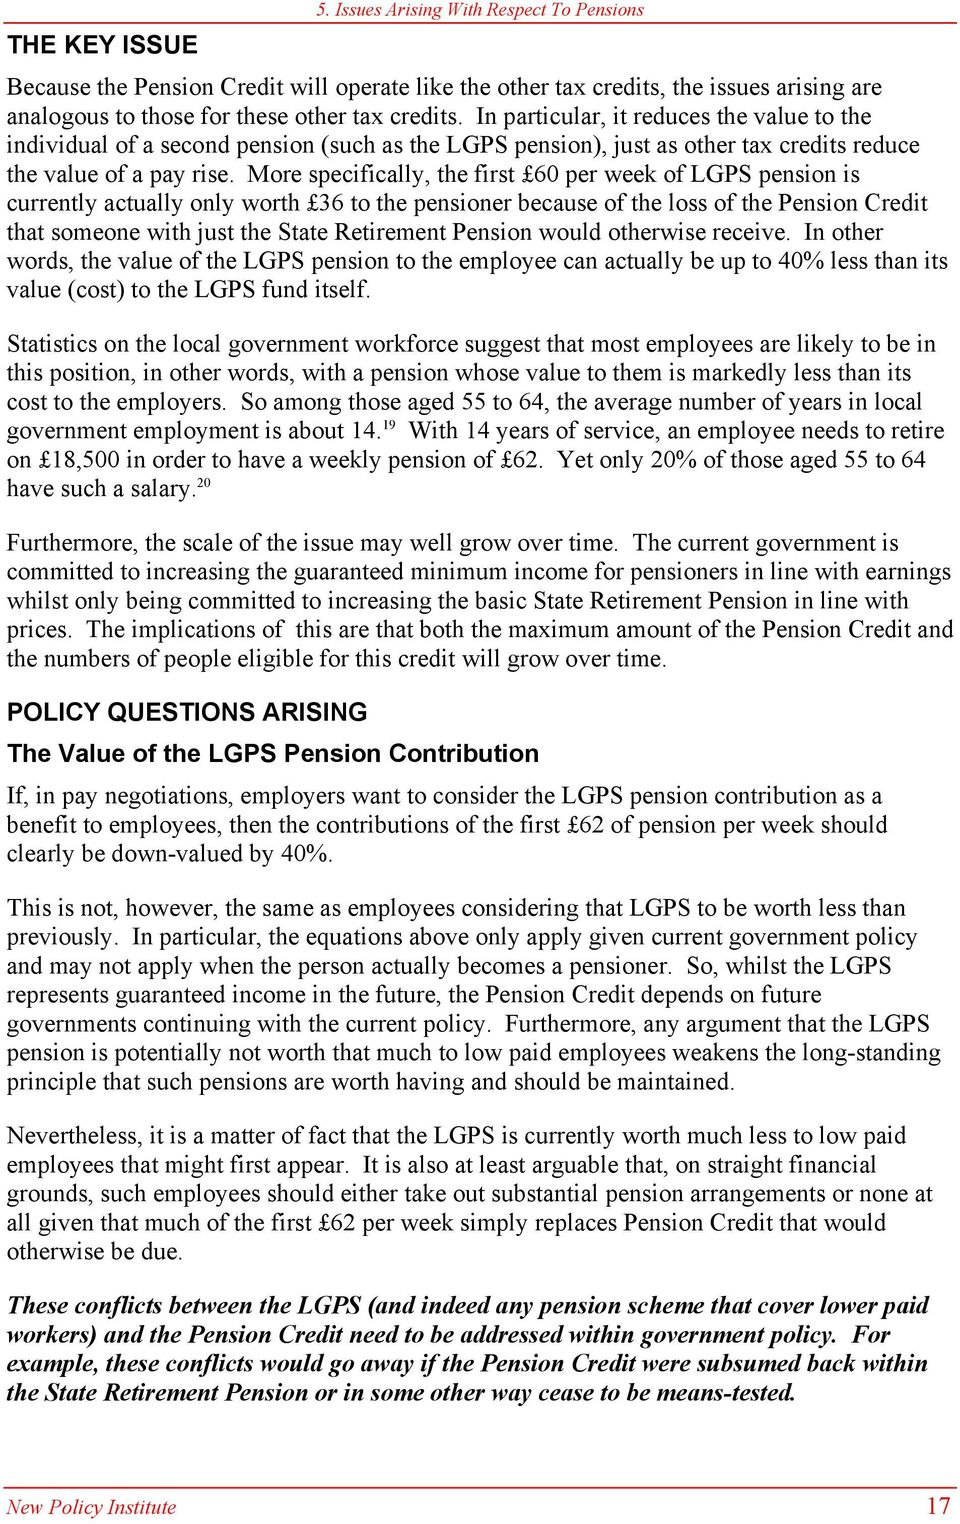 More specifically, the first 60 per week of LGPS pension is currently actually only worth 36 to the pensioner because of the loss of the Pension Credit that someone with just the State Retirement